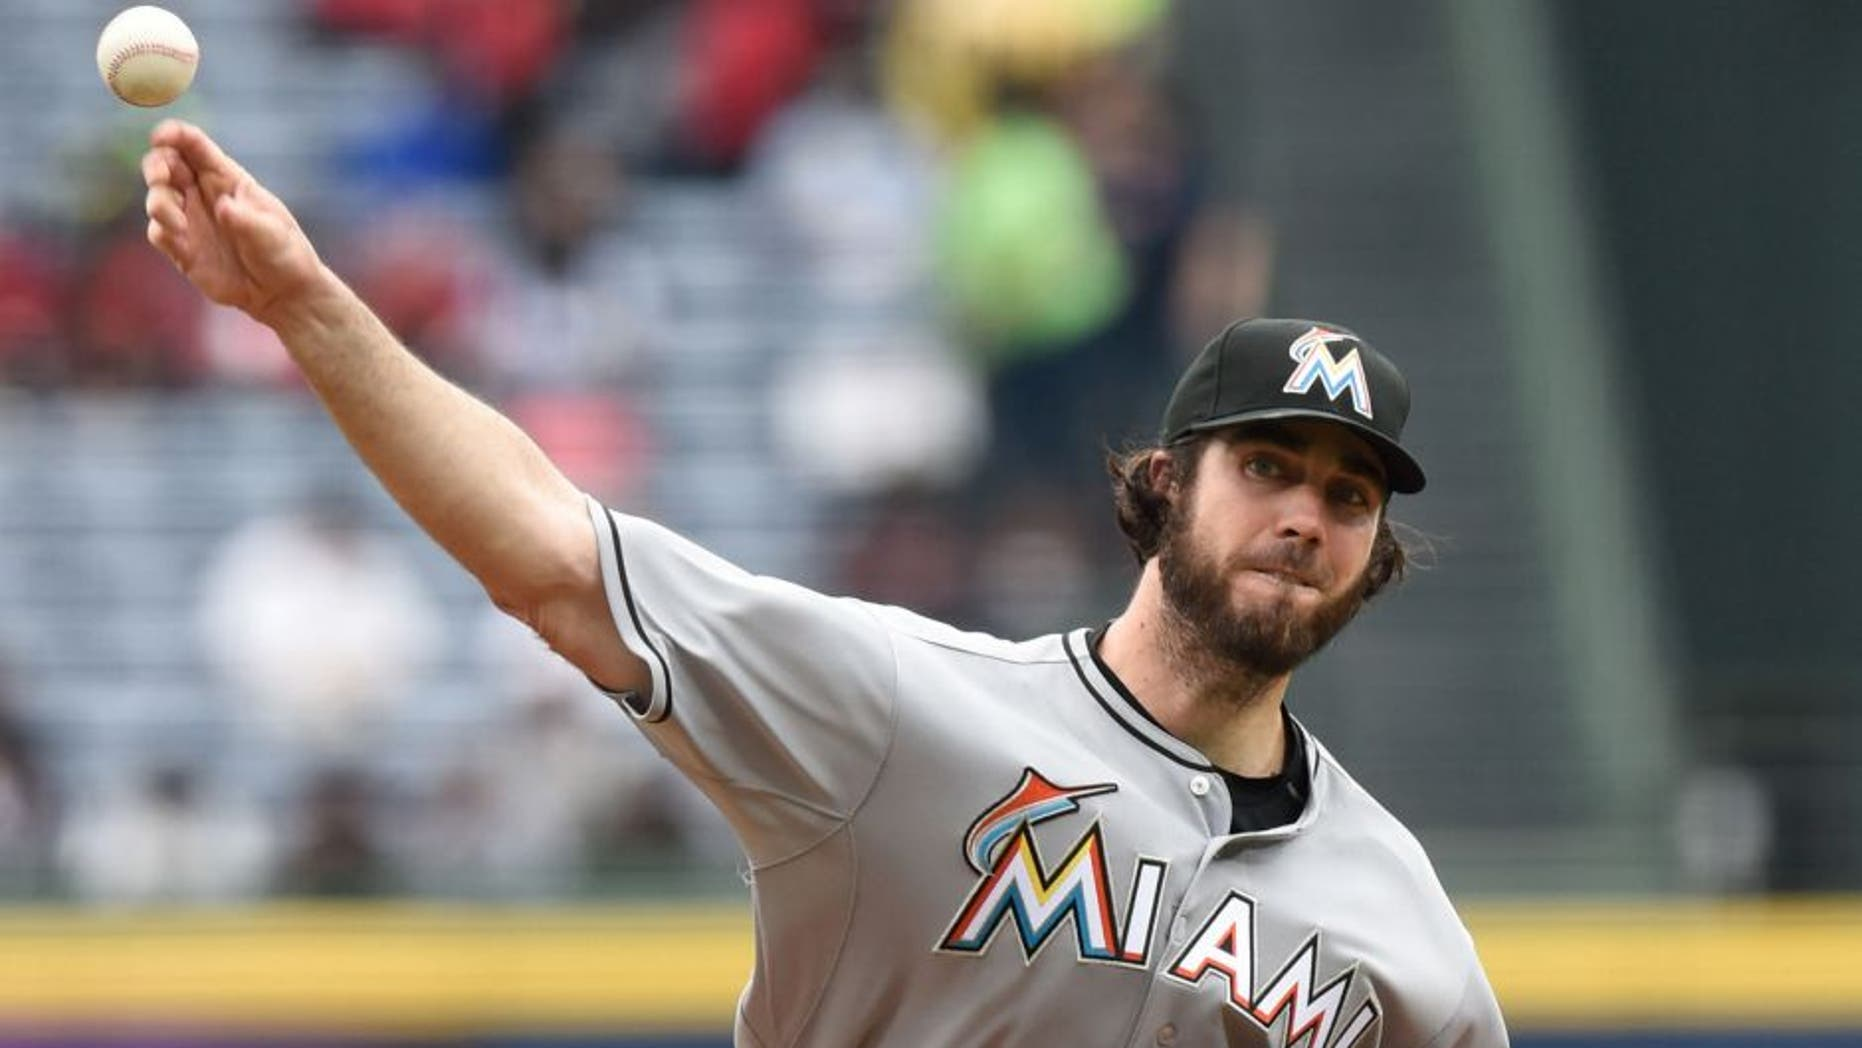 Apr 15, 2015; Atlanta, GA, USA; Miami Marlins starting pitcher Dan Haren pitches against the Atlanta Braves during the first inning at Turner Field. Mandatory Credit: Dale Zanine-USA TODAY Sports